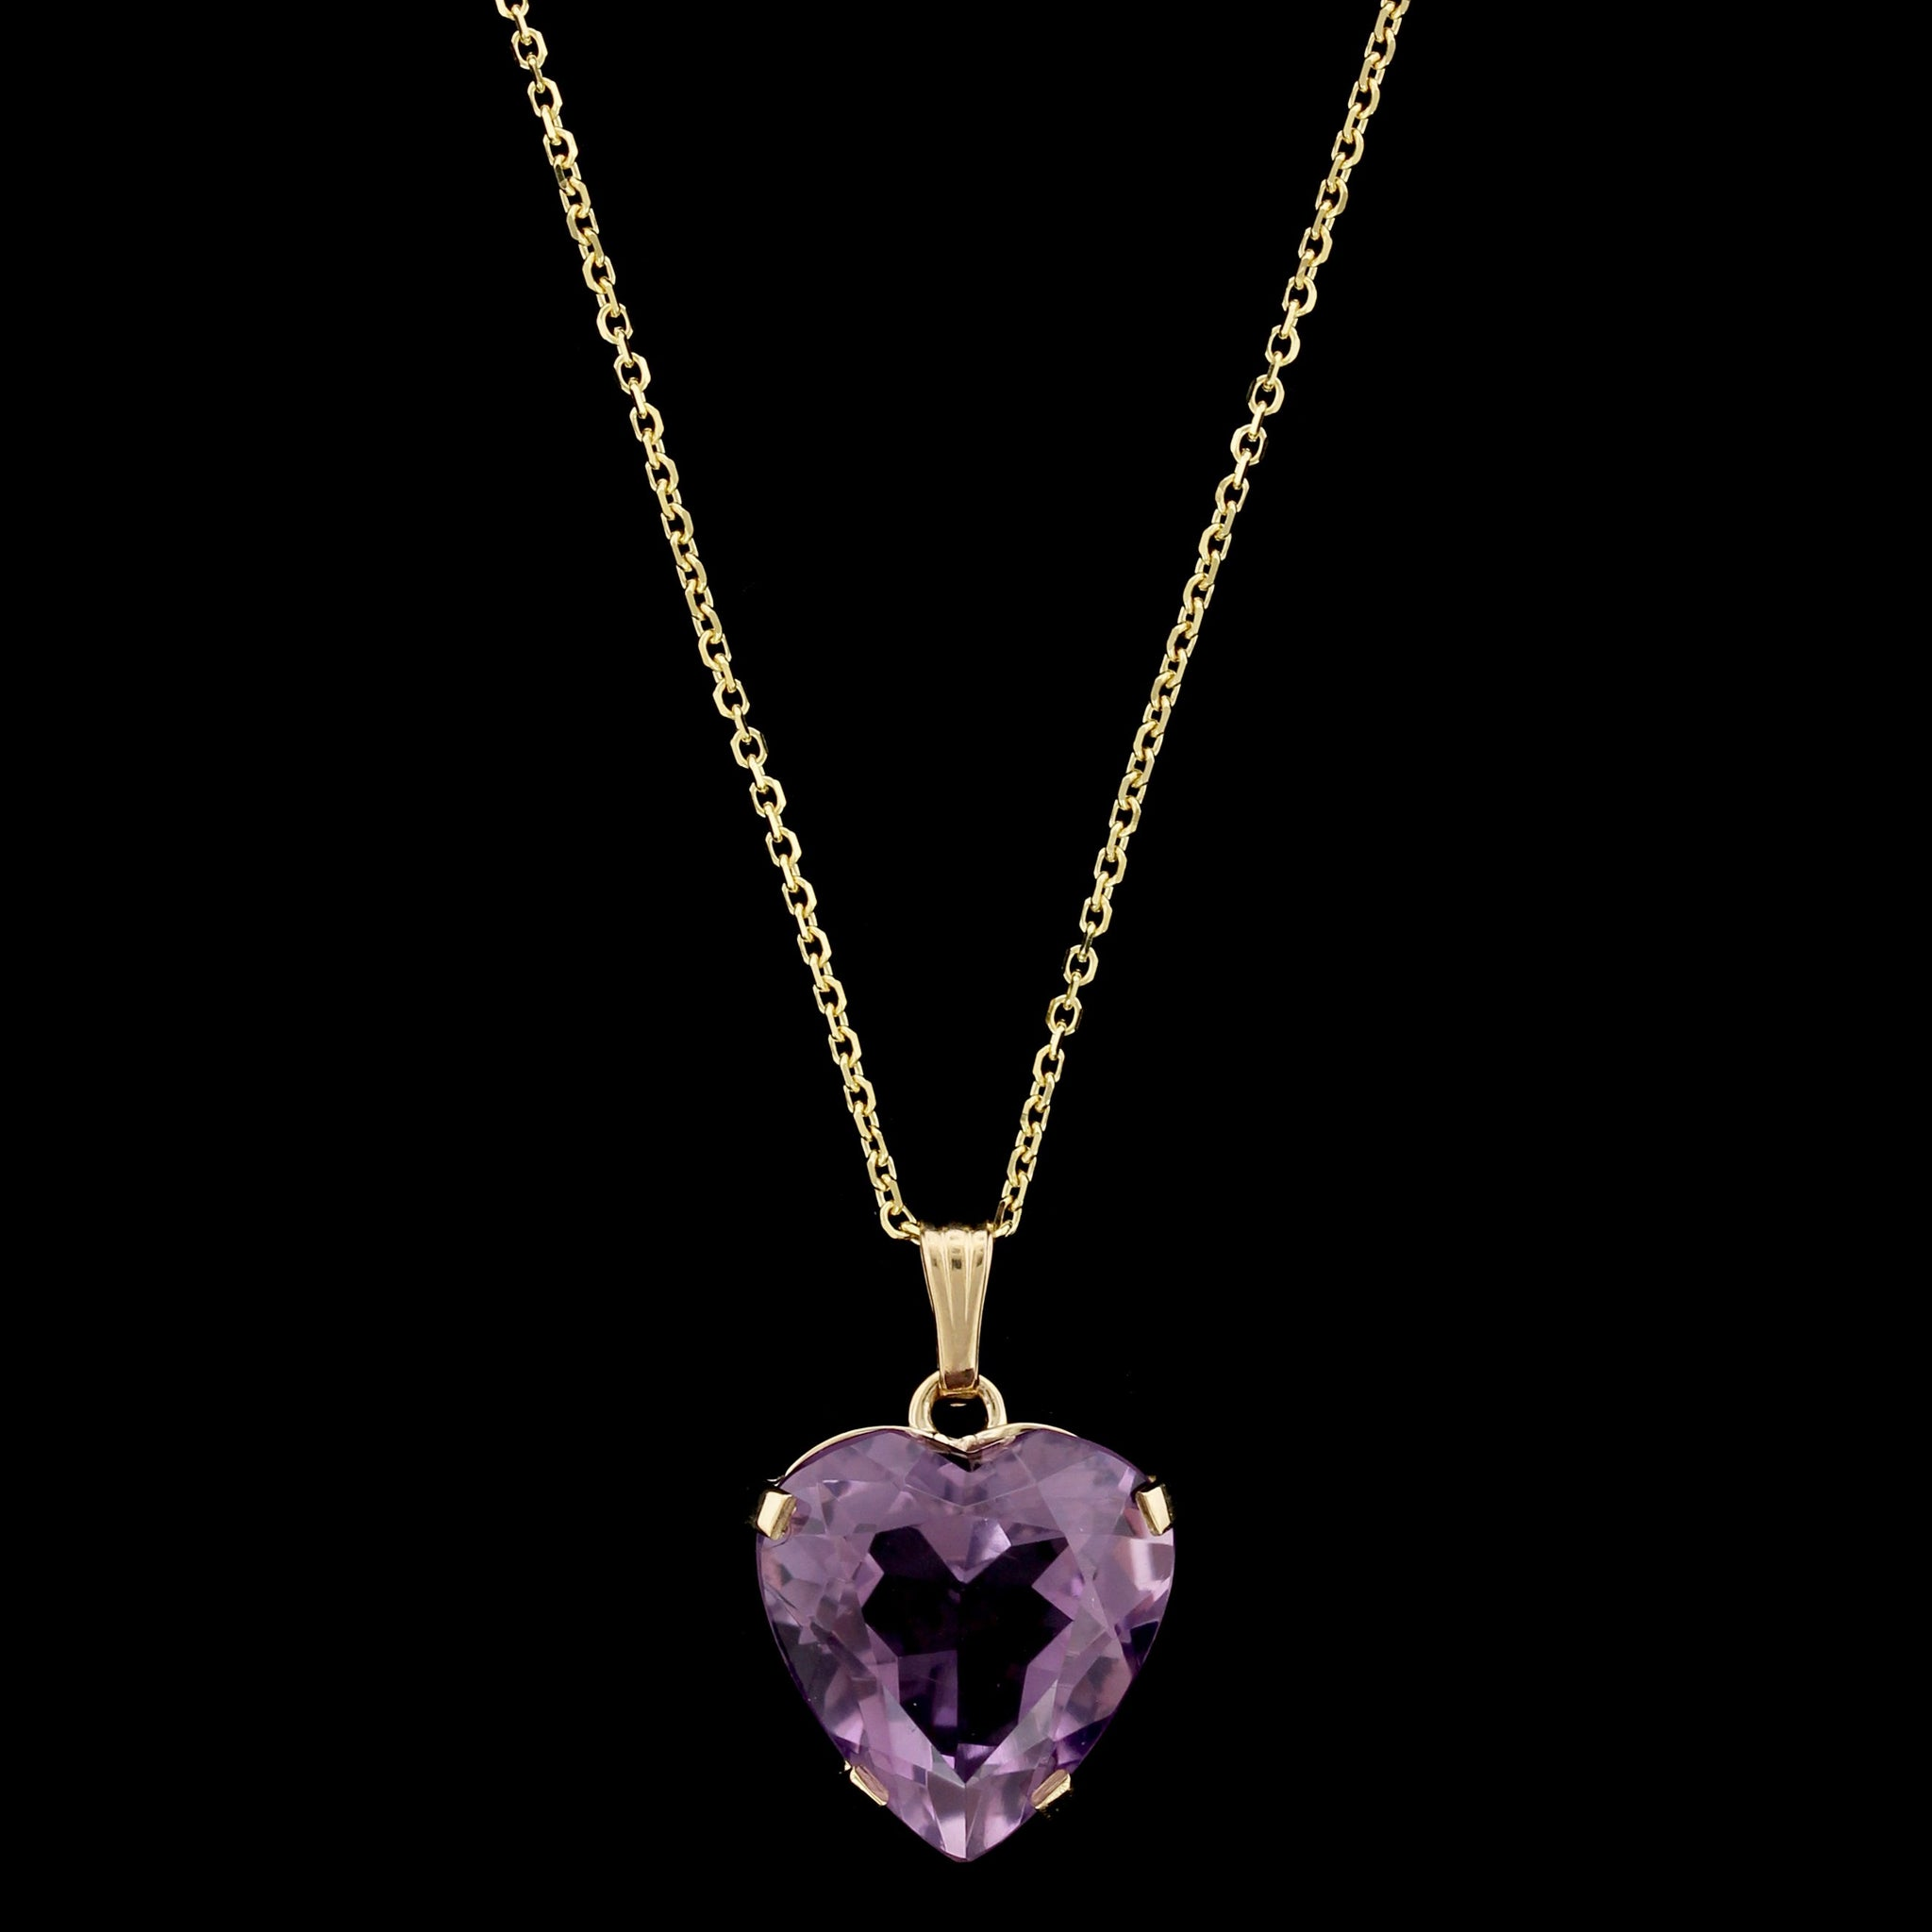 14K Yellow Gold Estate Amethyst Pendant